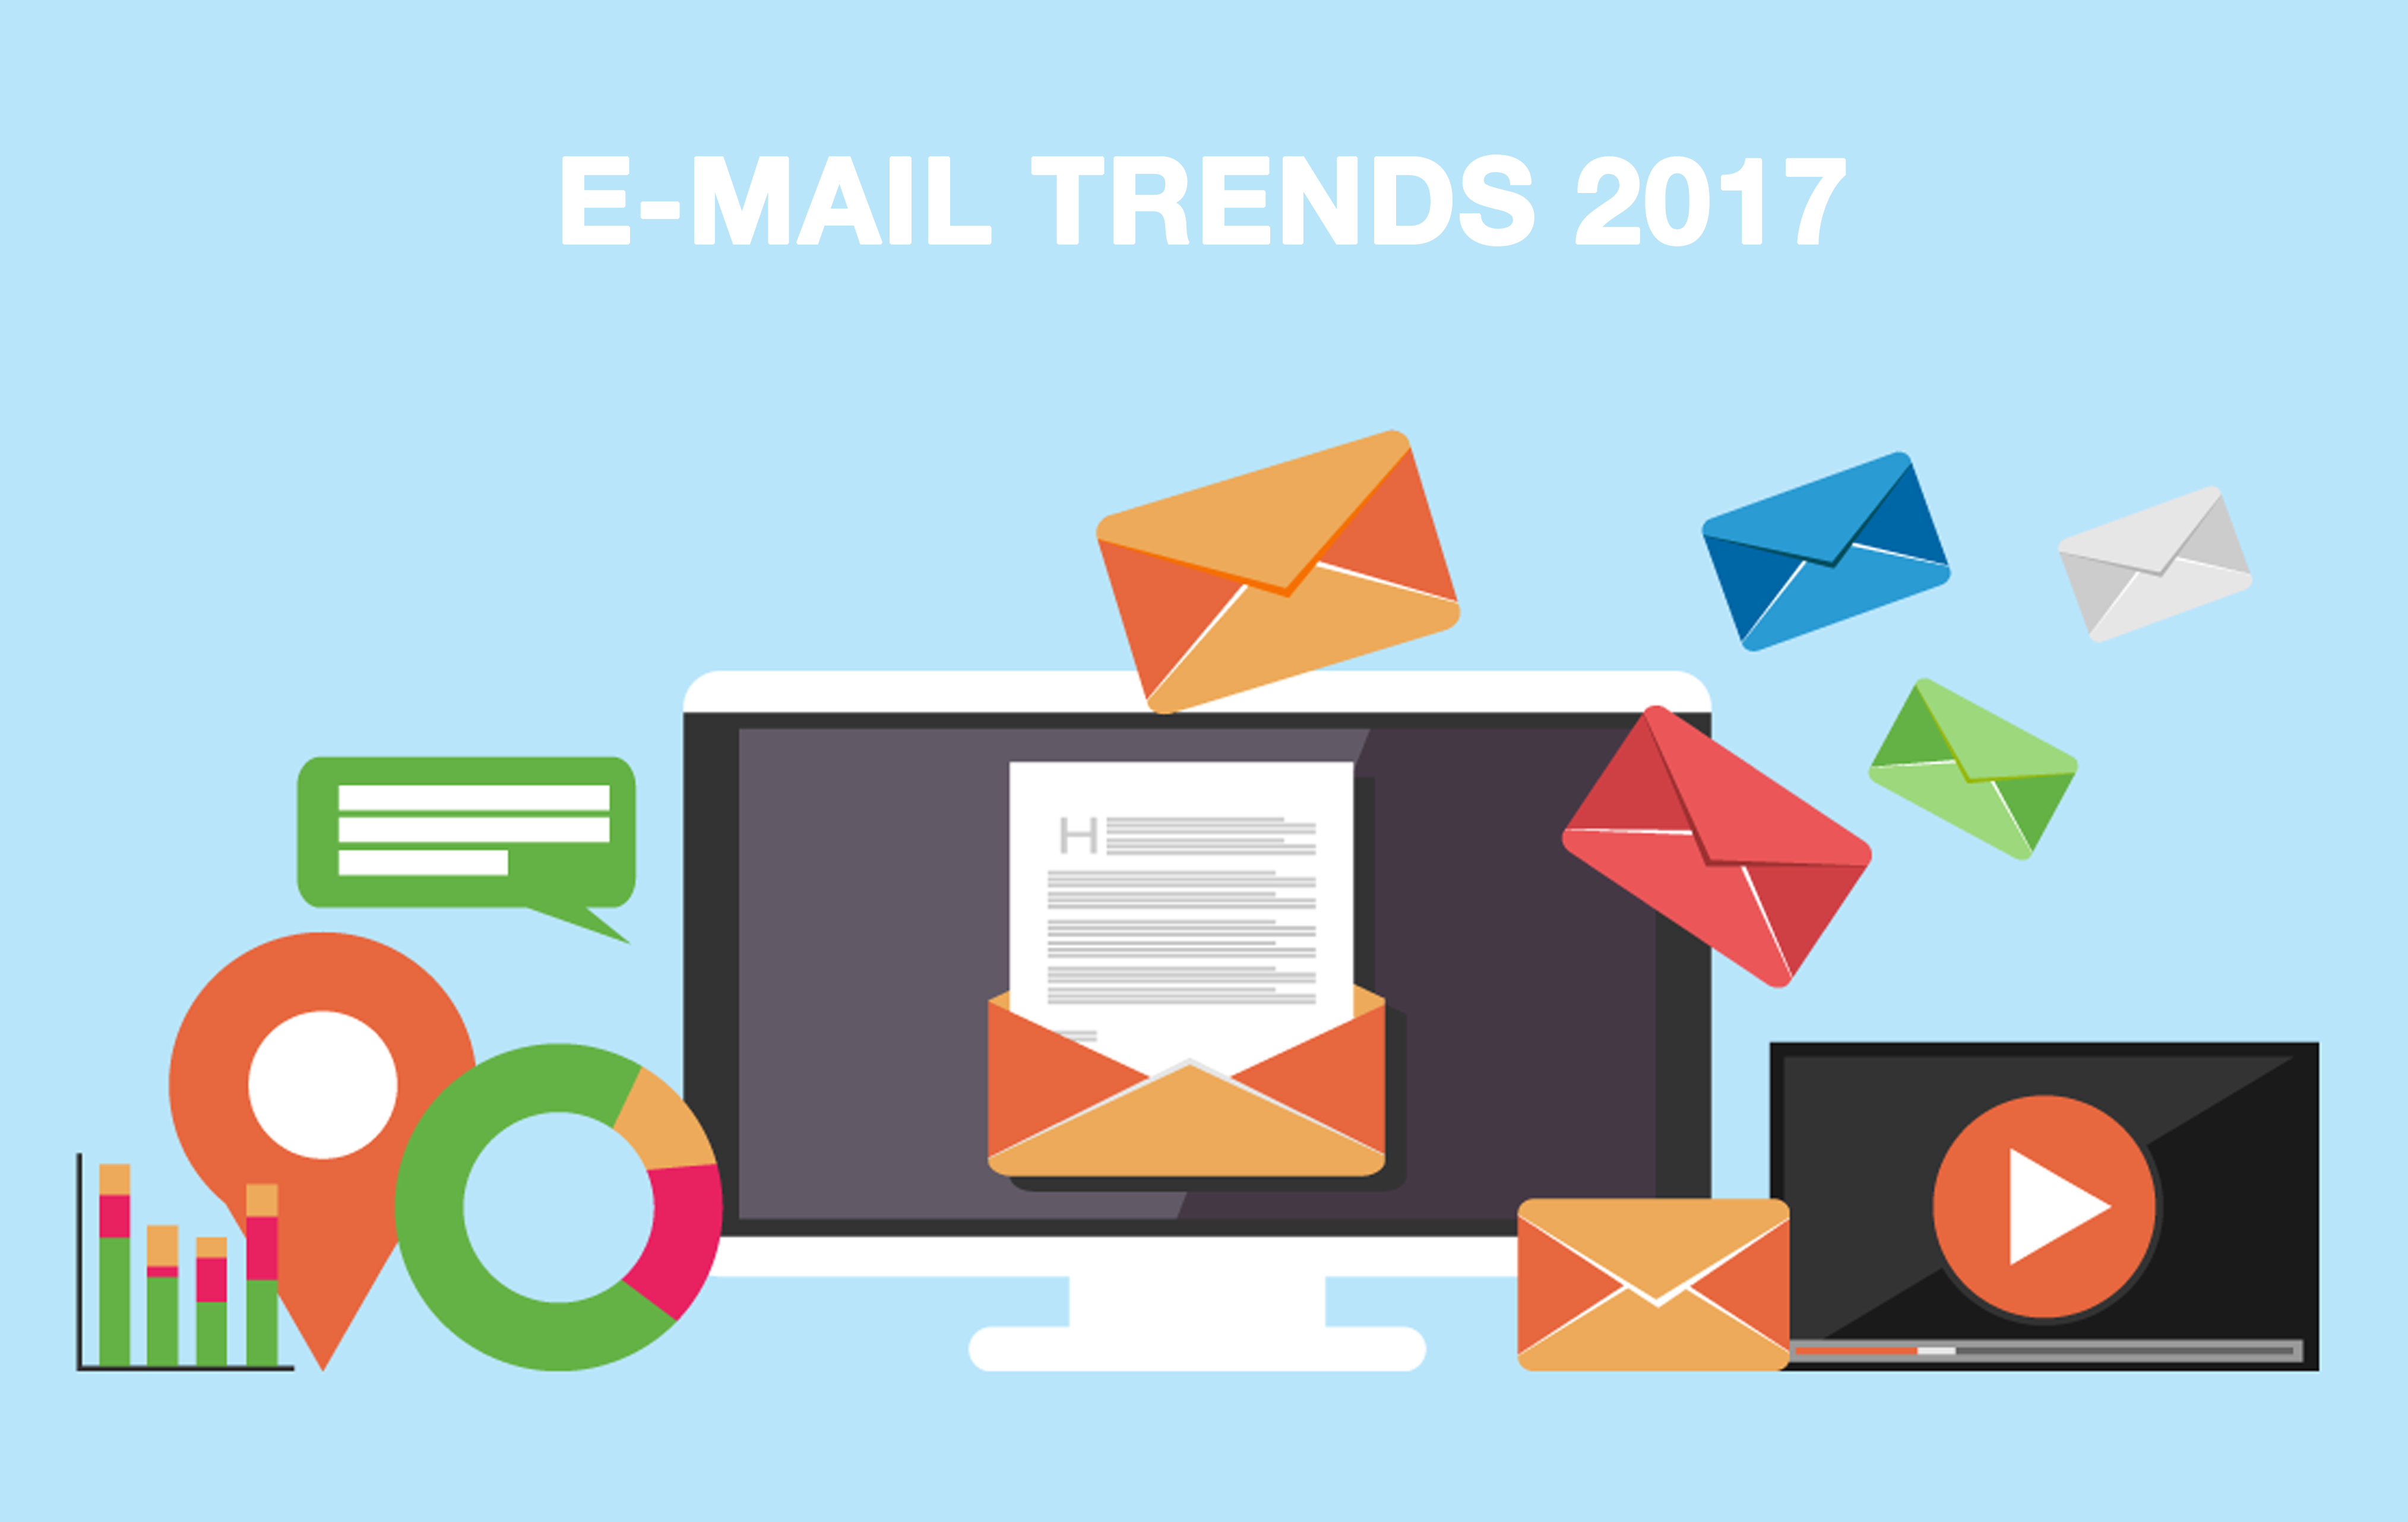 E-mail trends